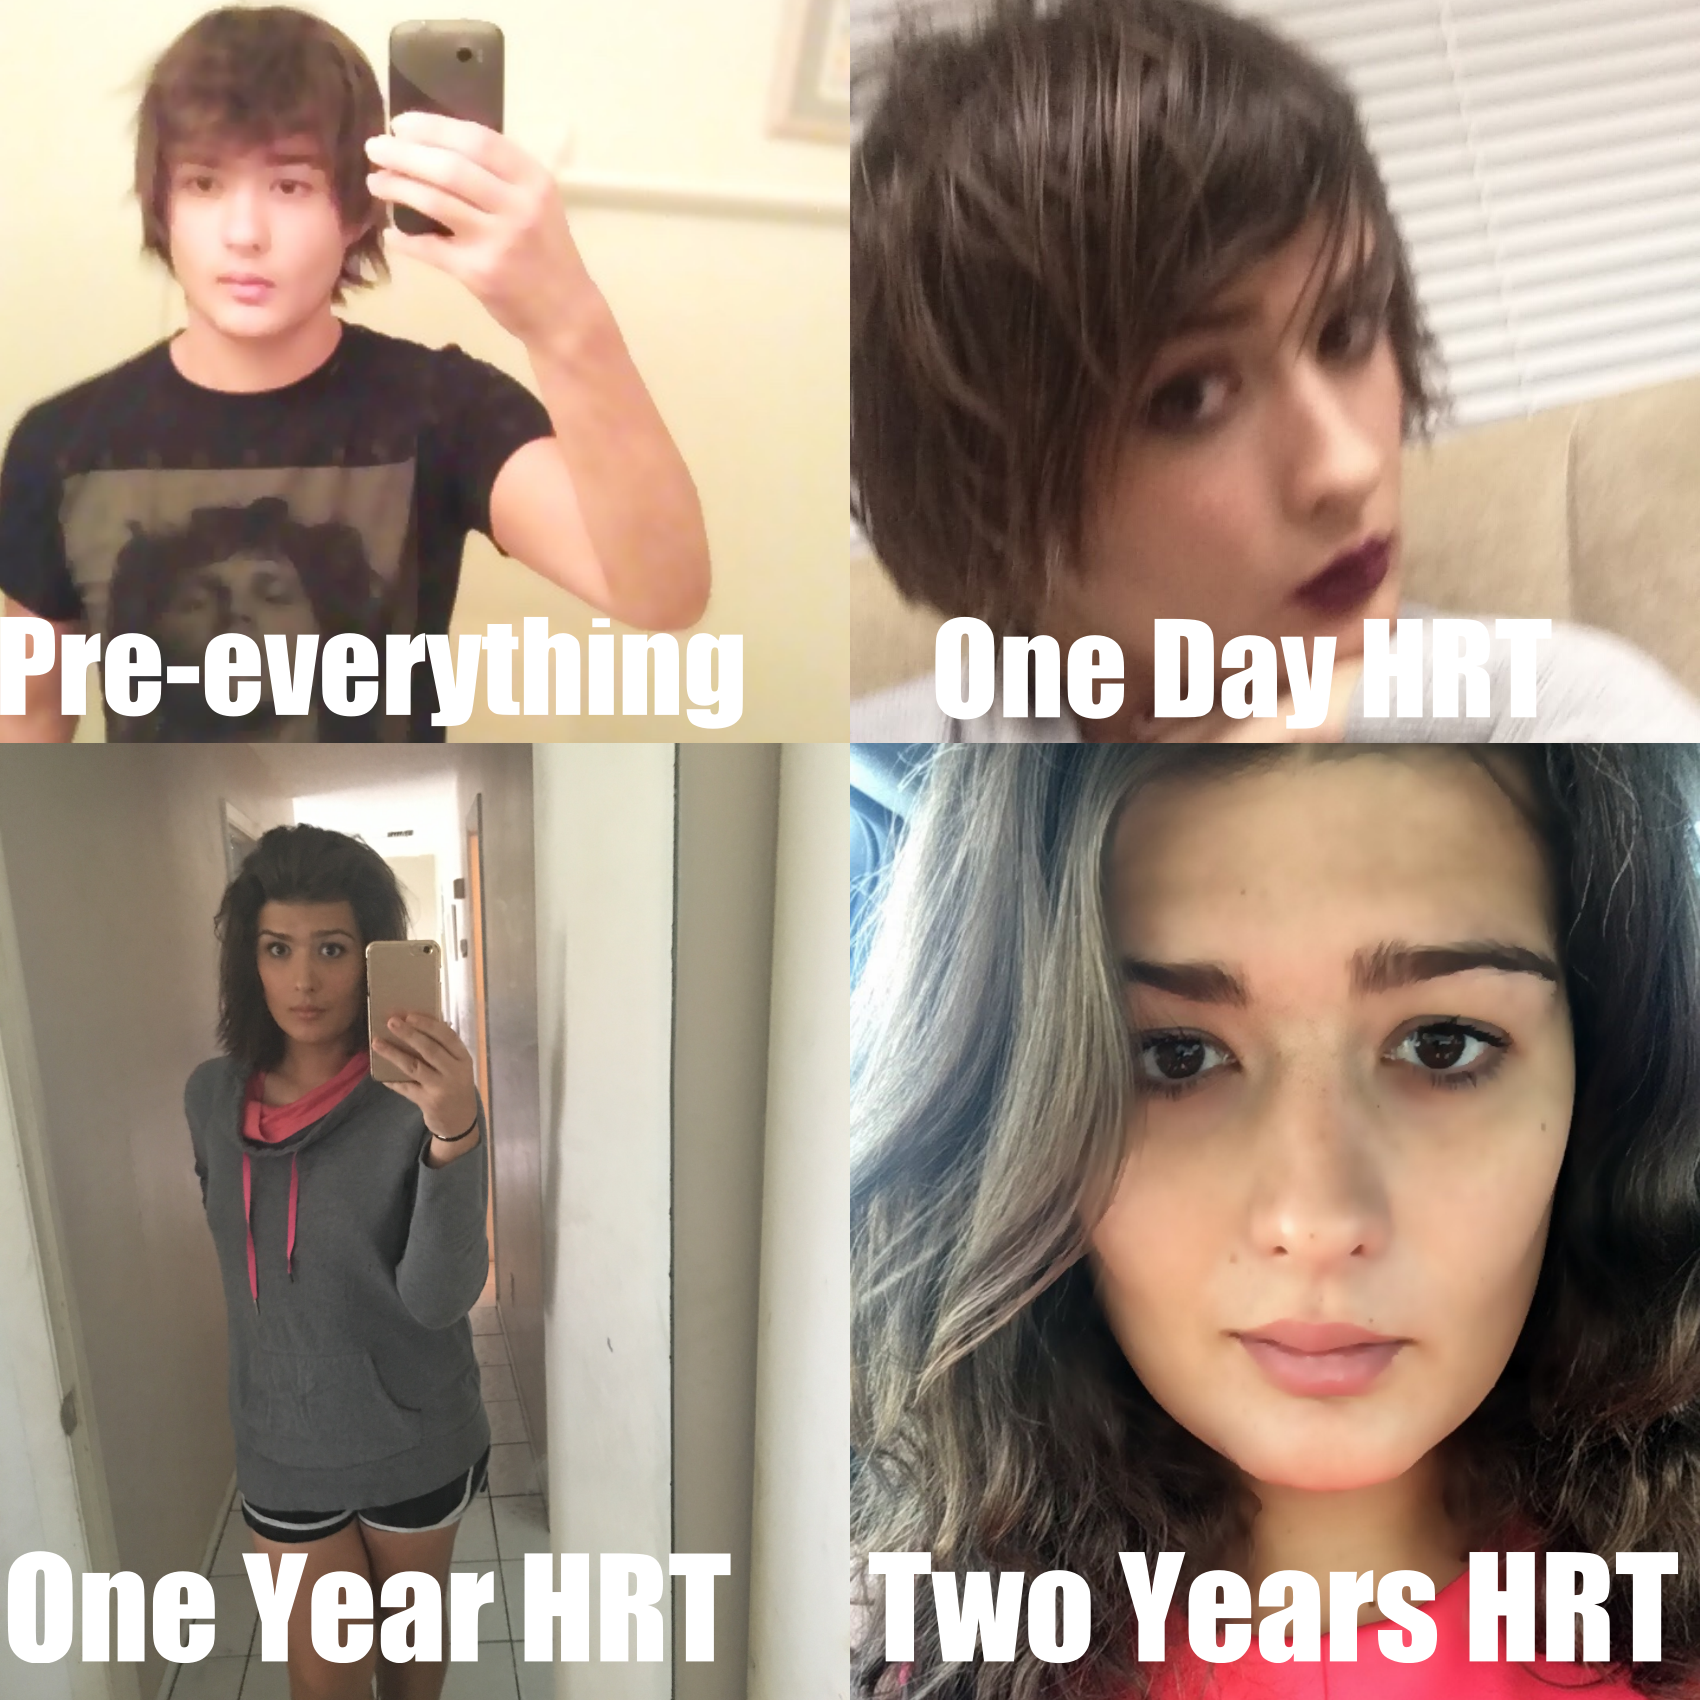 Transsexual hrt